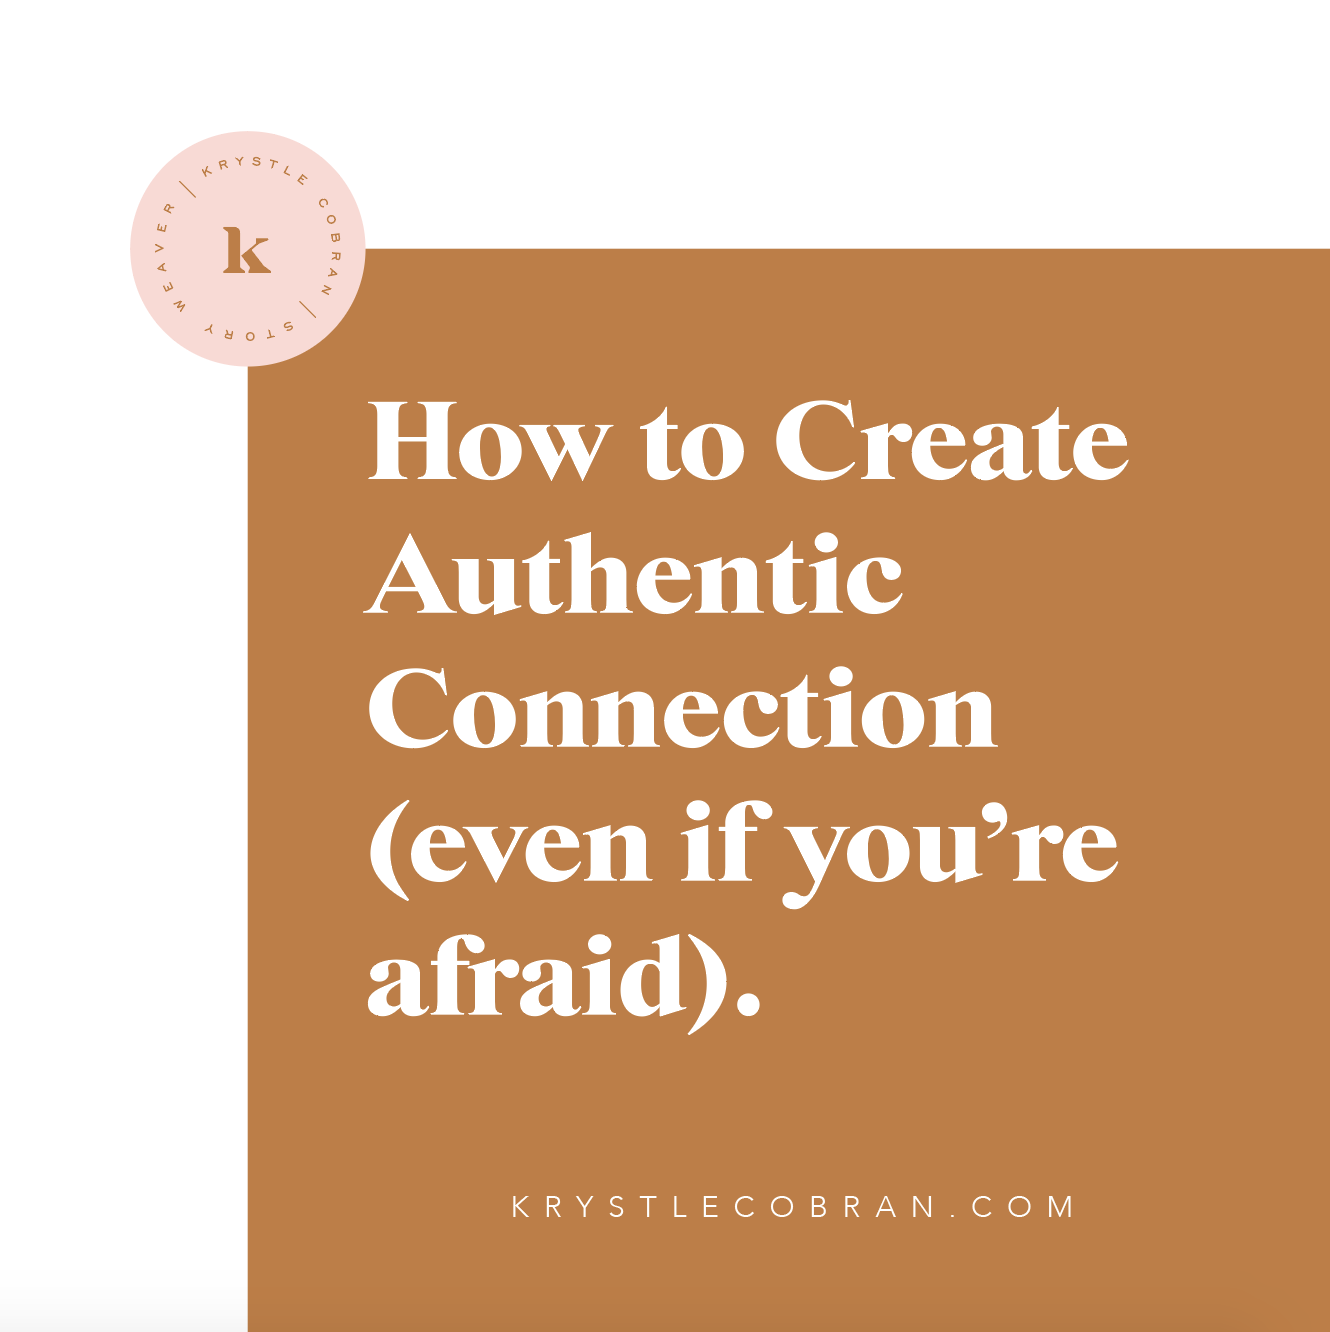 How to Create Authentic Connection - audio training - krystlecobran.com